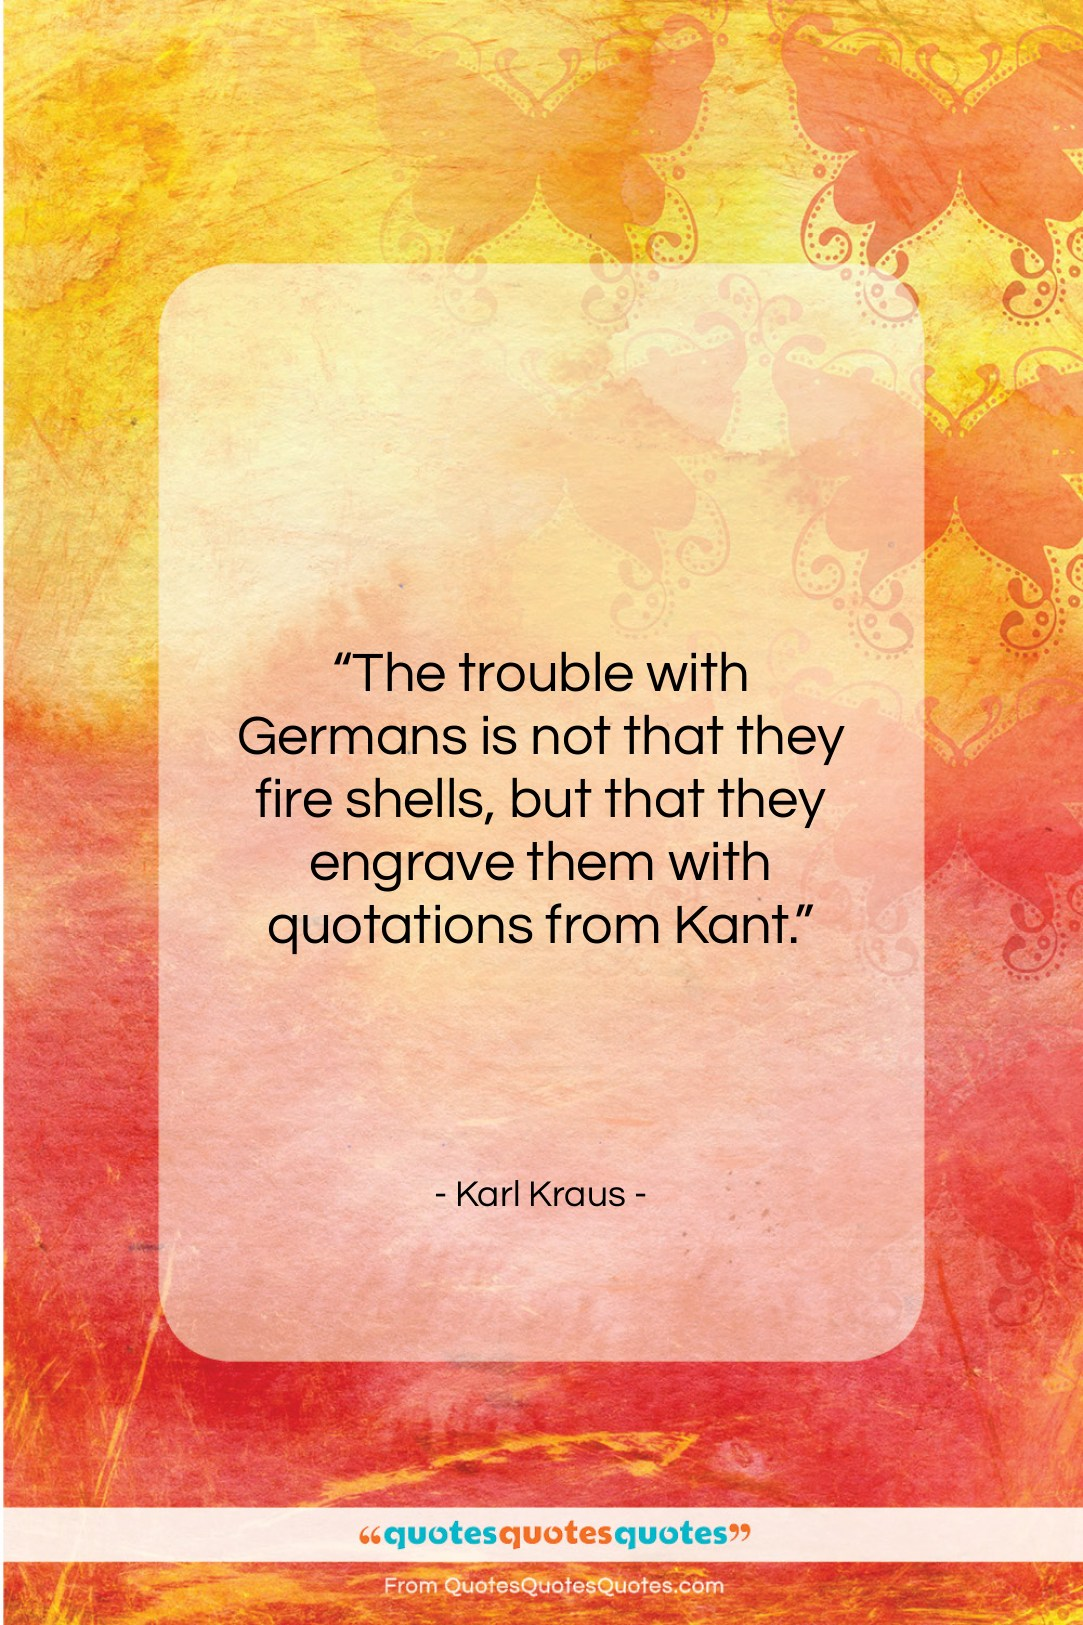 """Karl Kraus quote: """"The trouble with Germans is not that…""""- at QuotesQuotesQuotes.com"""